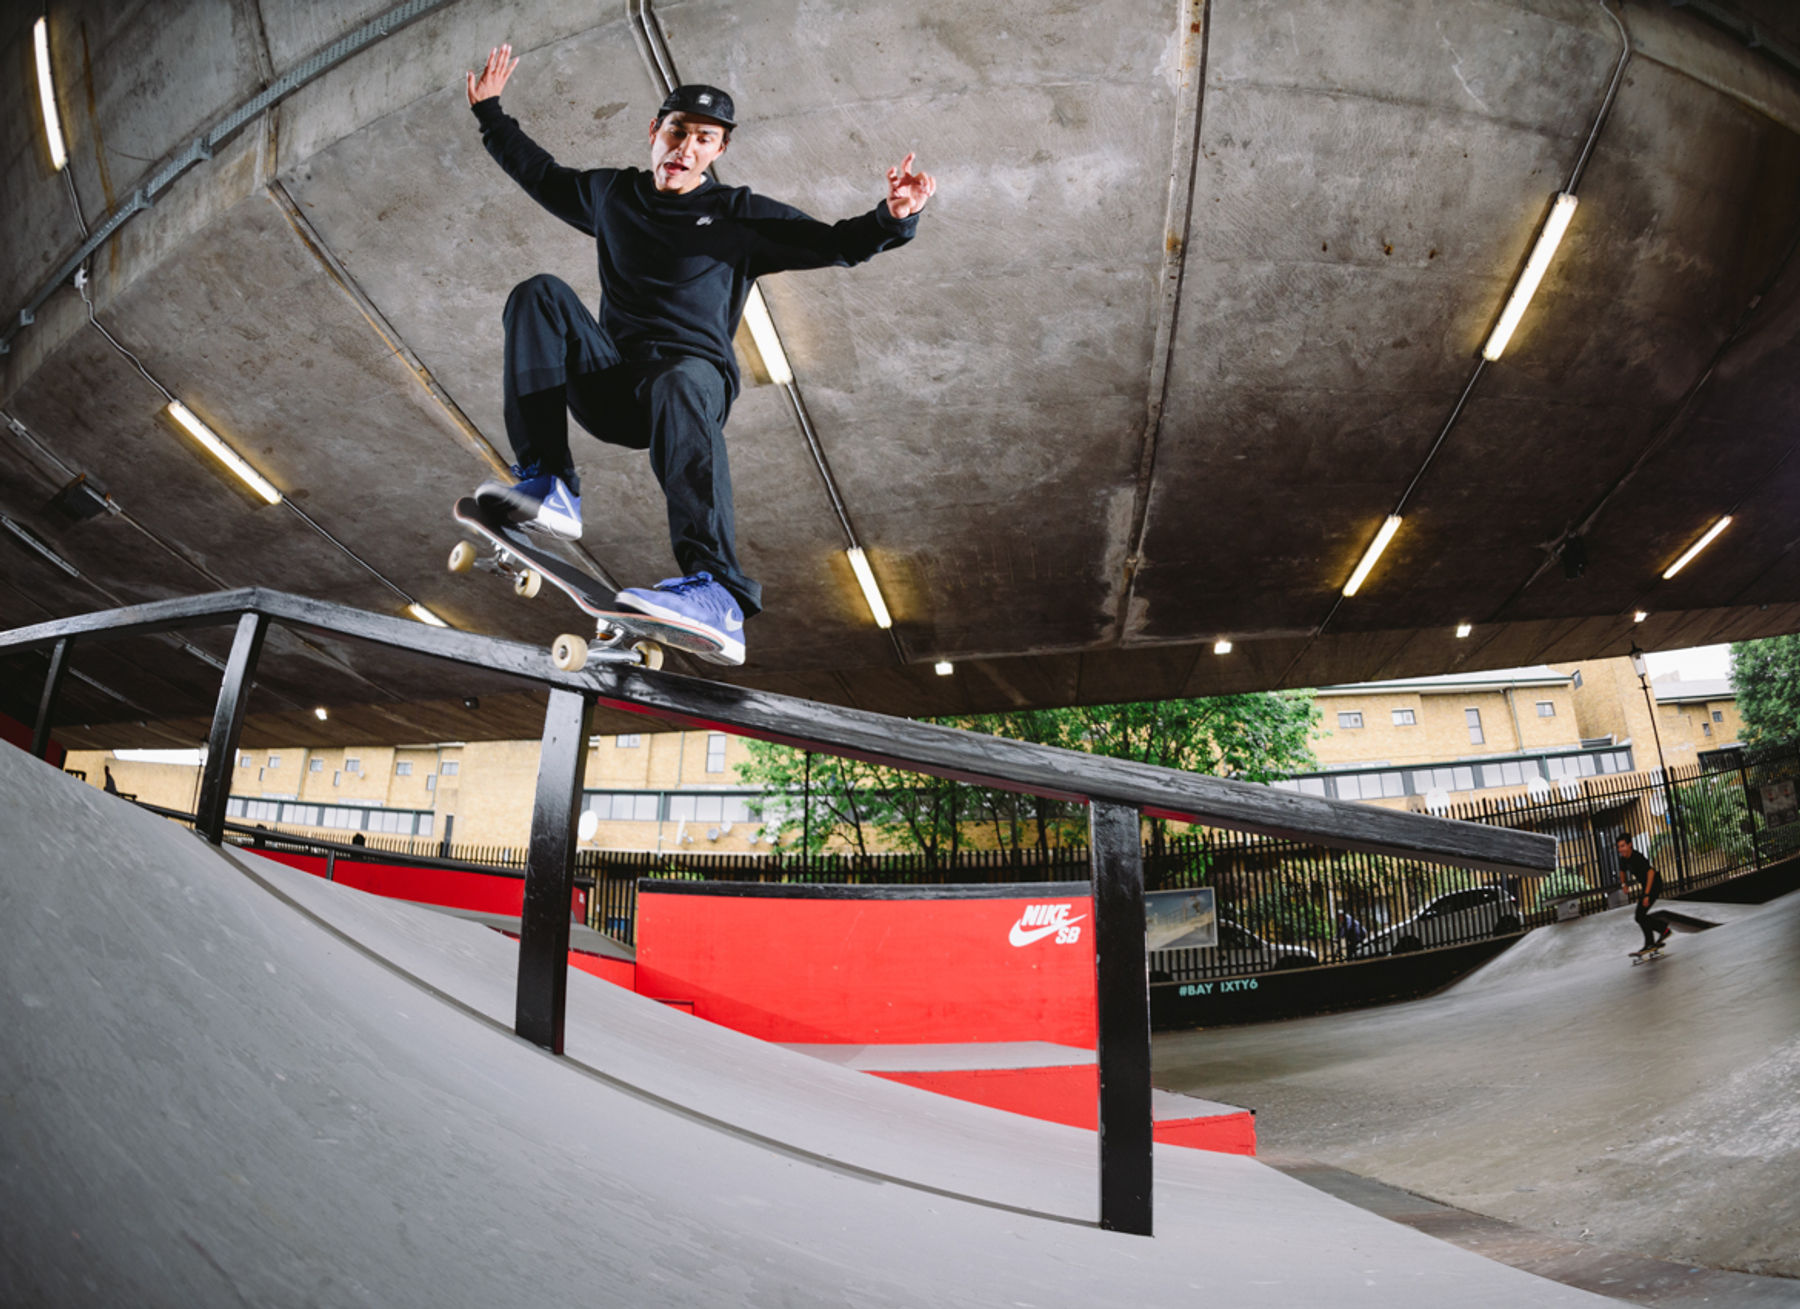 _IHC5017e-Didrik-Galasso-Fs-Nosegrind-Pop-Over-Nike-SB-London-AM-Day-2-June-2015-Photographer-Maksim-Kalanep